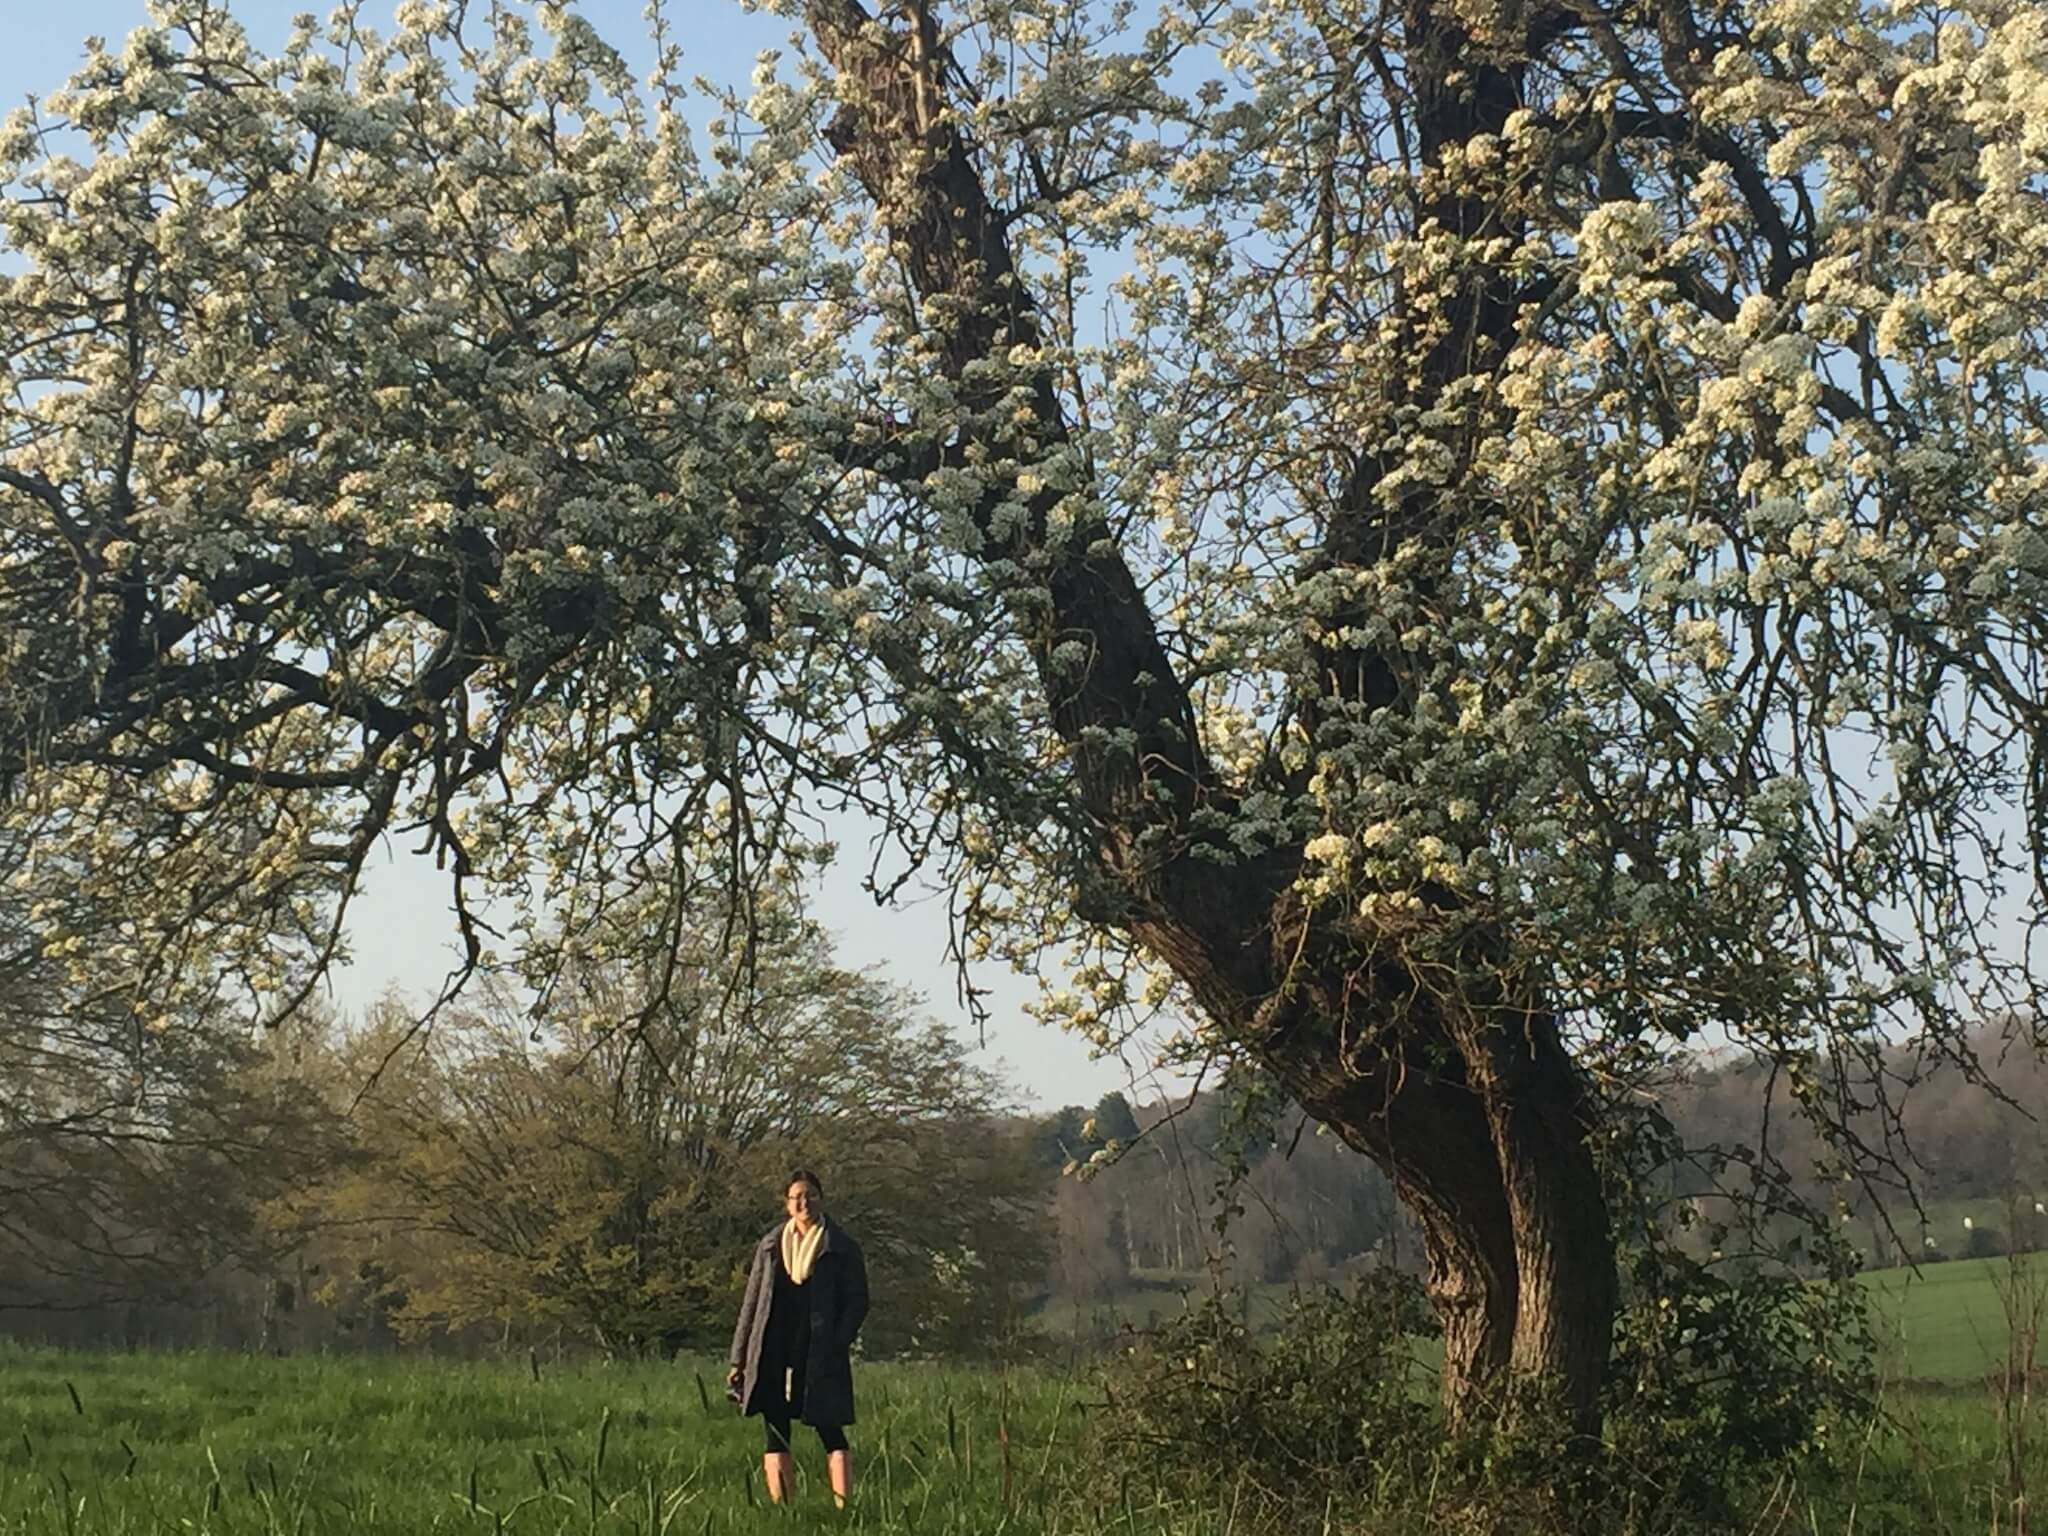 Marissa stands under a blossoming tree in the countryside of France.